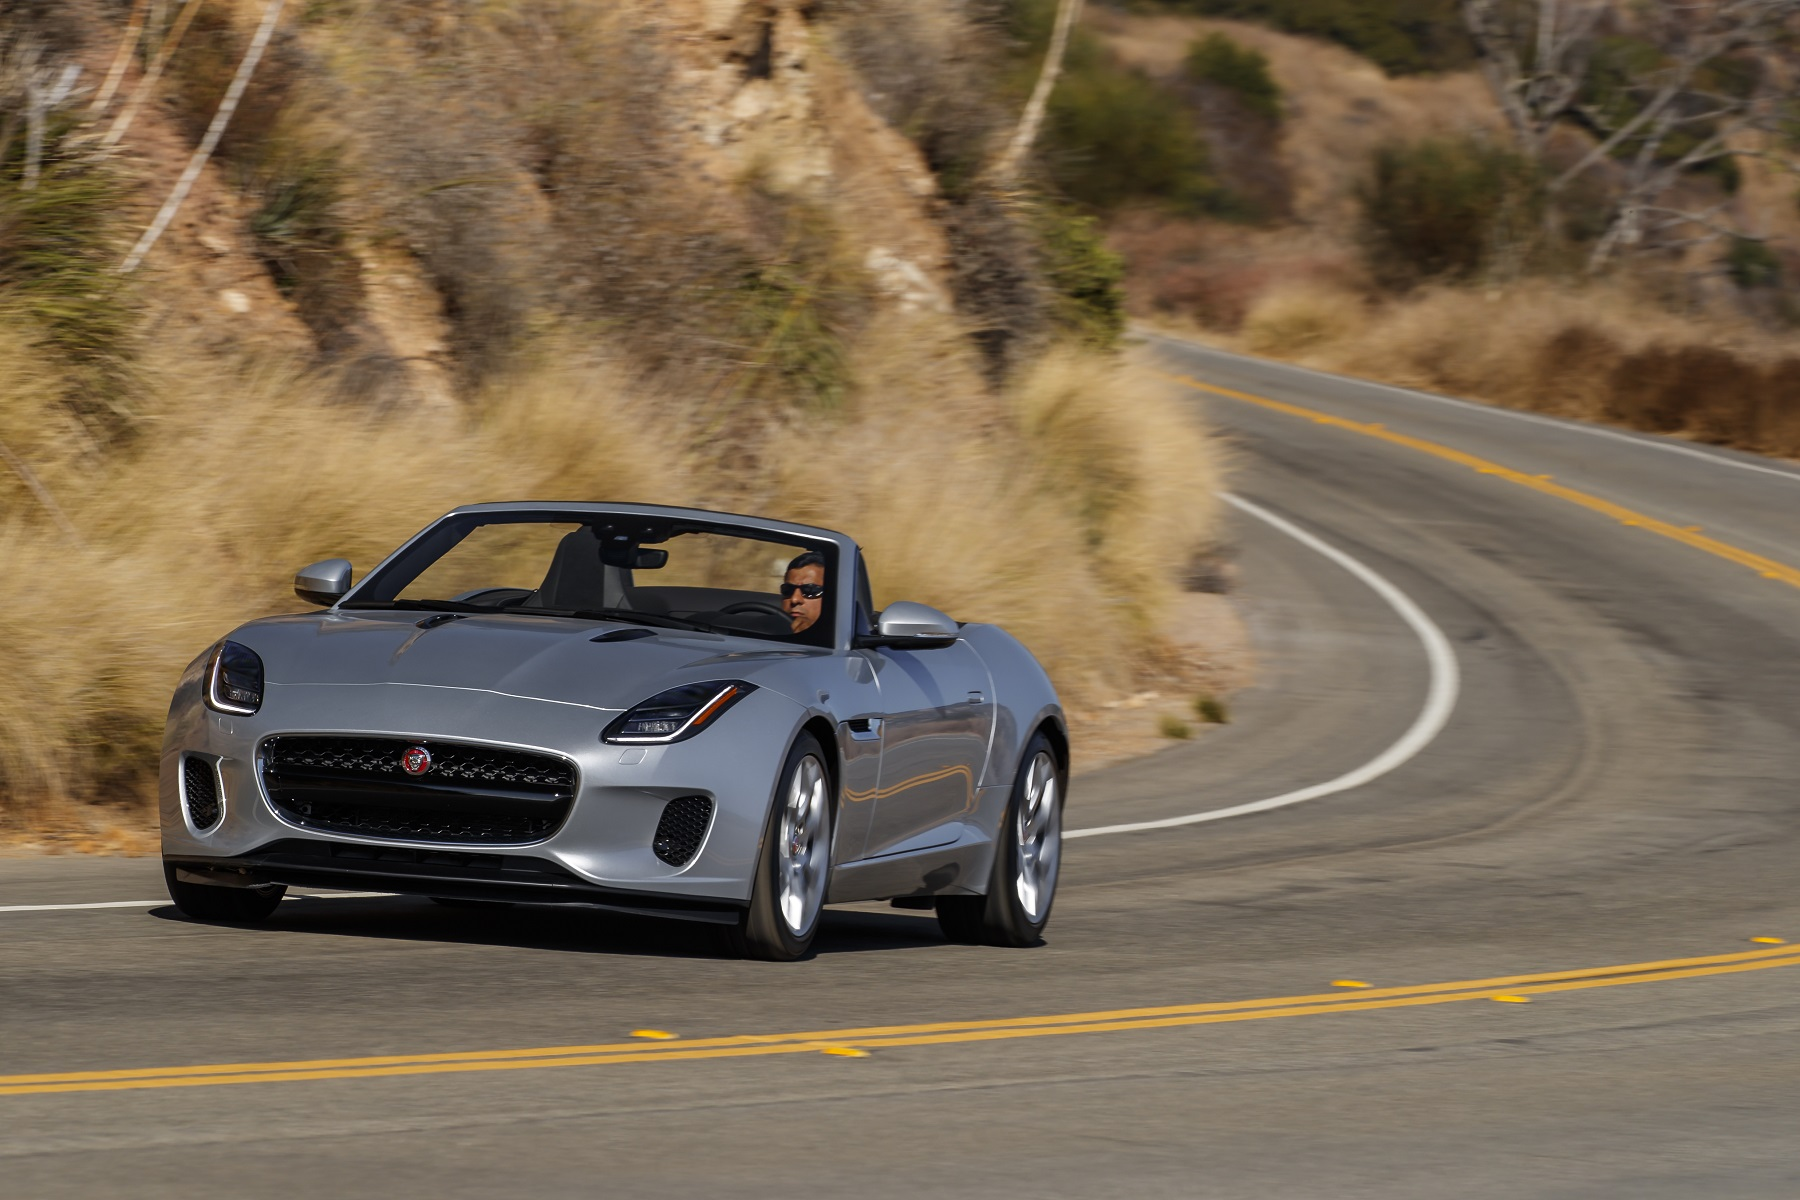 Manufacturer photo: The 2018 F-Type exhibits a near-perfect proportion and stance, with a long hood, a rearward-positioned cabin, and a short rear deck and overhang